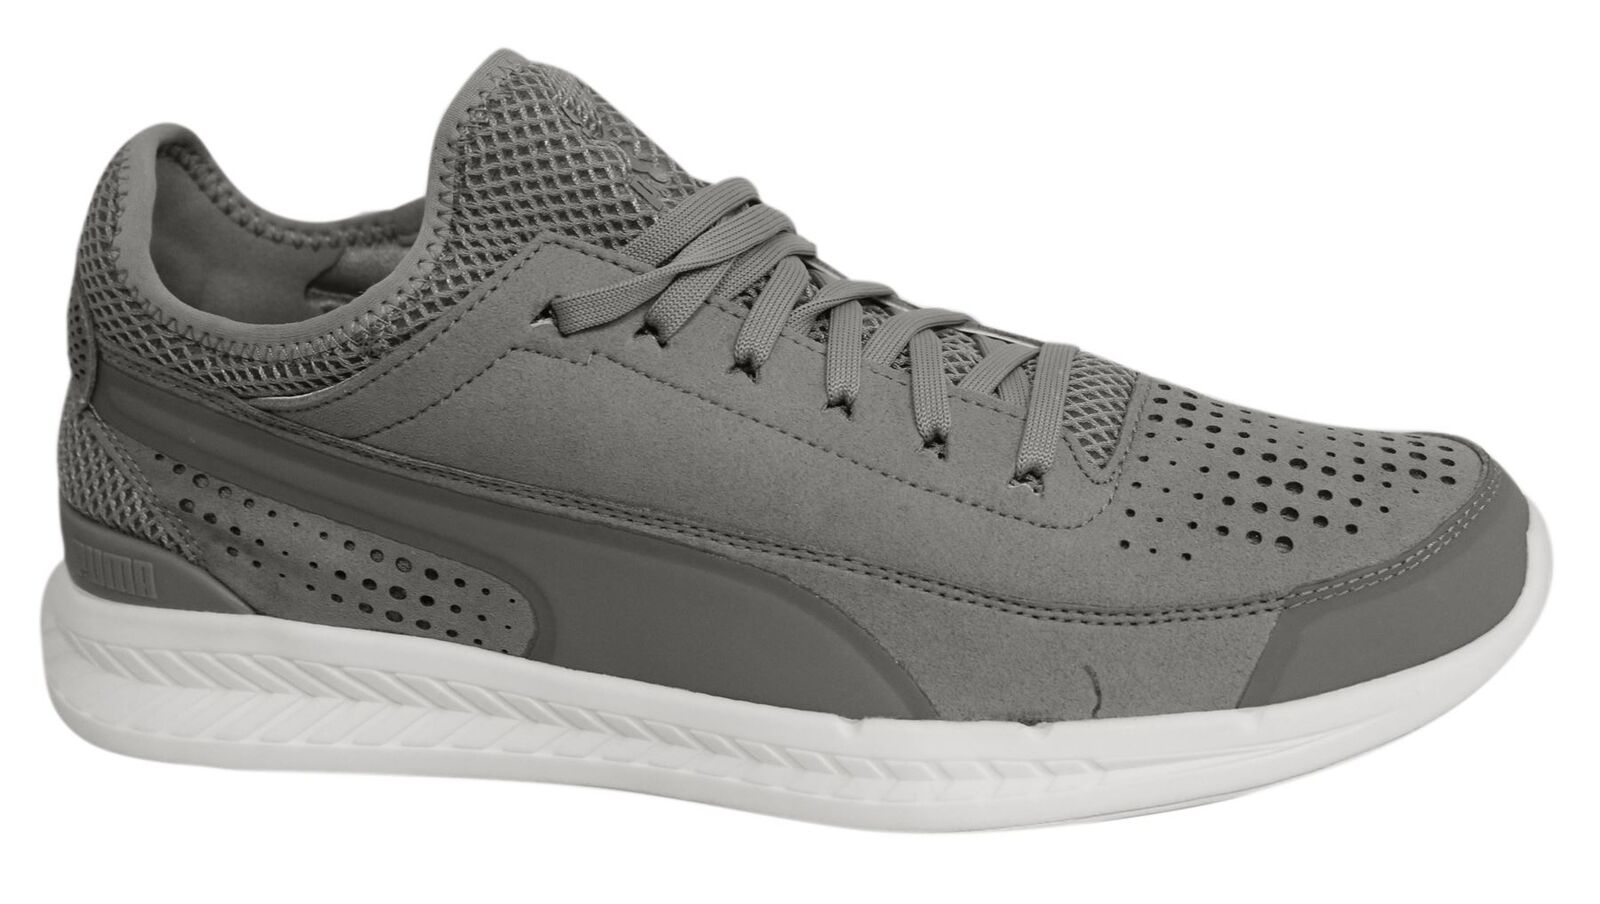 Puma Ignite Sock Lace Up Grey Synthetic Mens Trainers 360570 02 U21